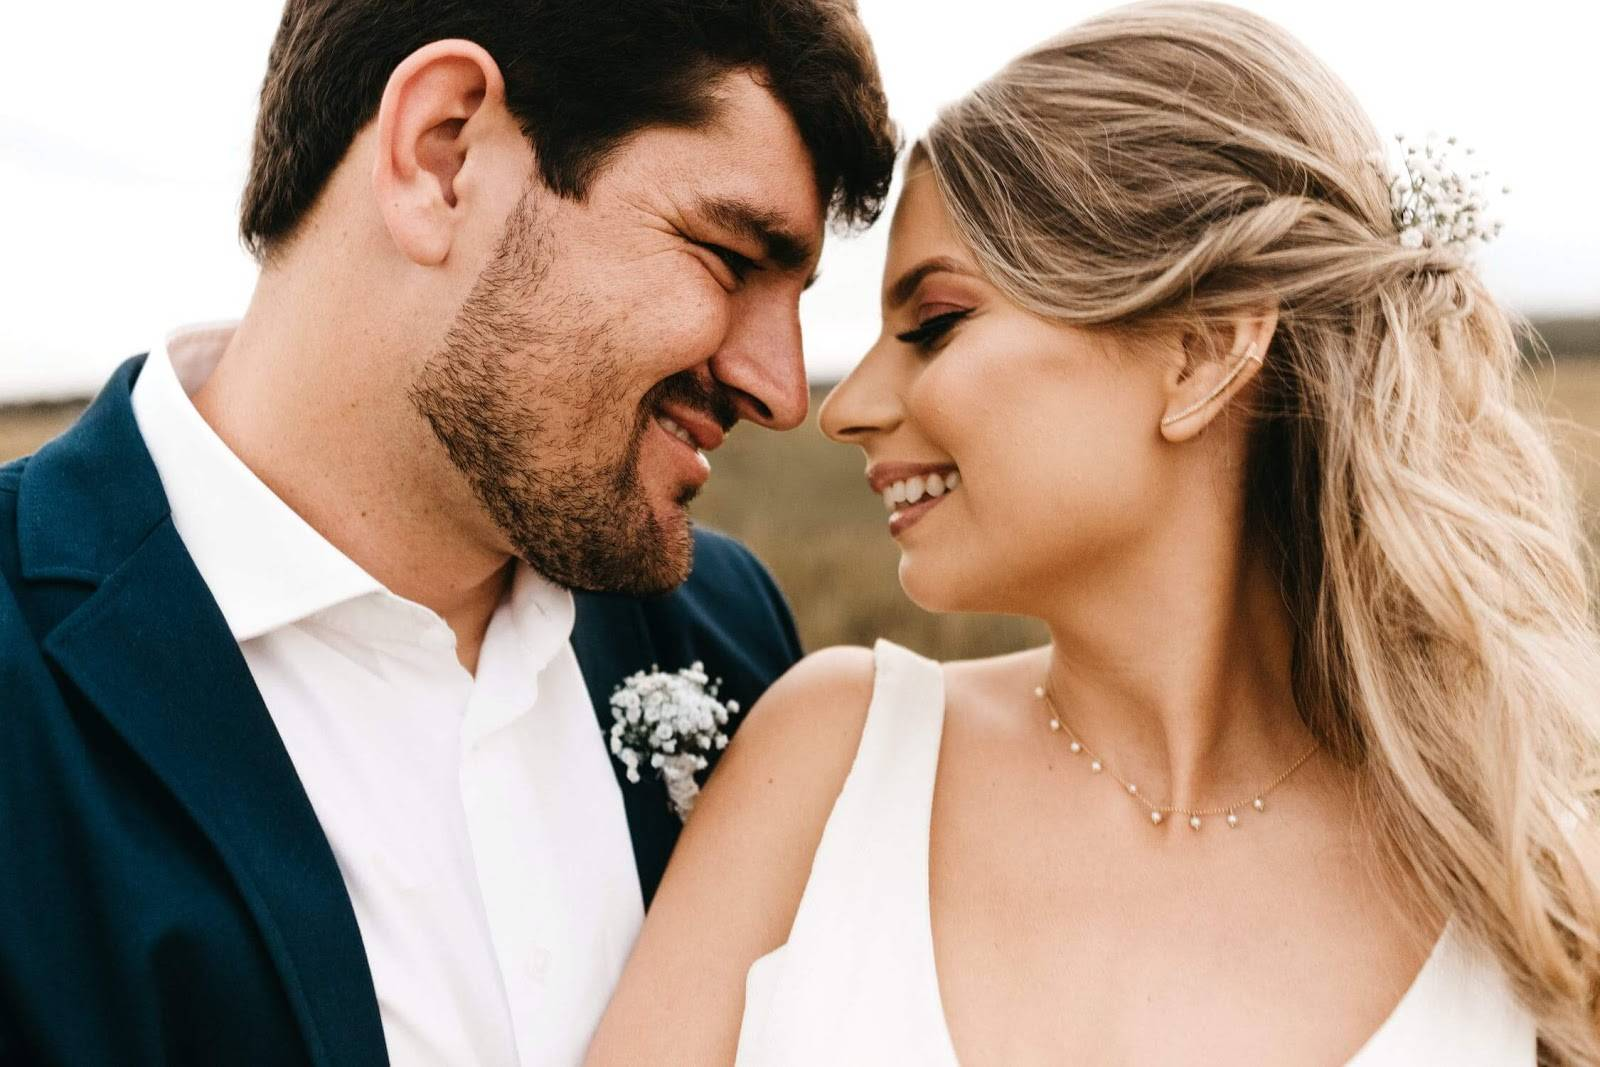 7 Wedding Trends for 2021 Every Bride Should Know About